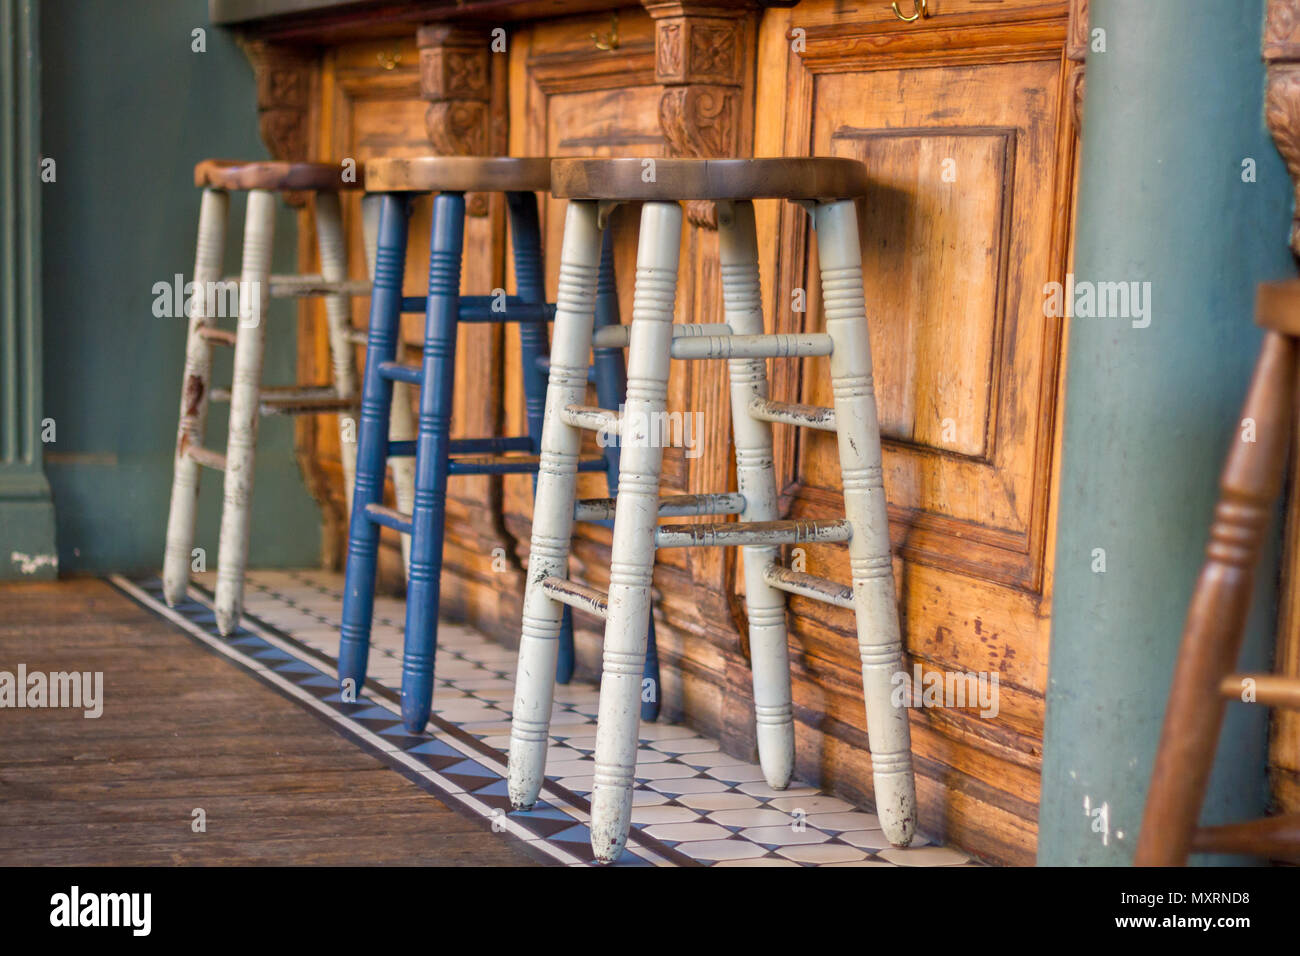 Painted Wooden Bar Stools In Front Of A Wooden Bar Stock Photo